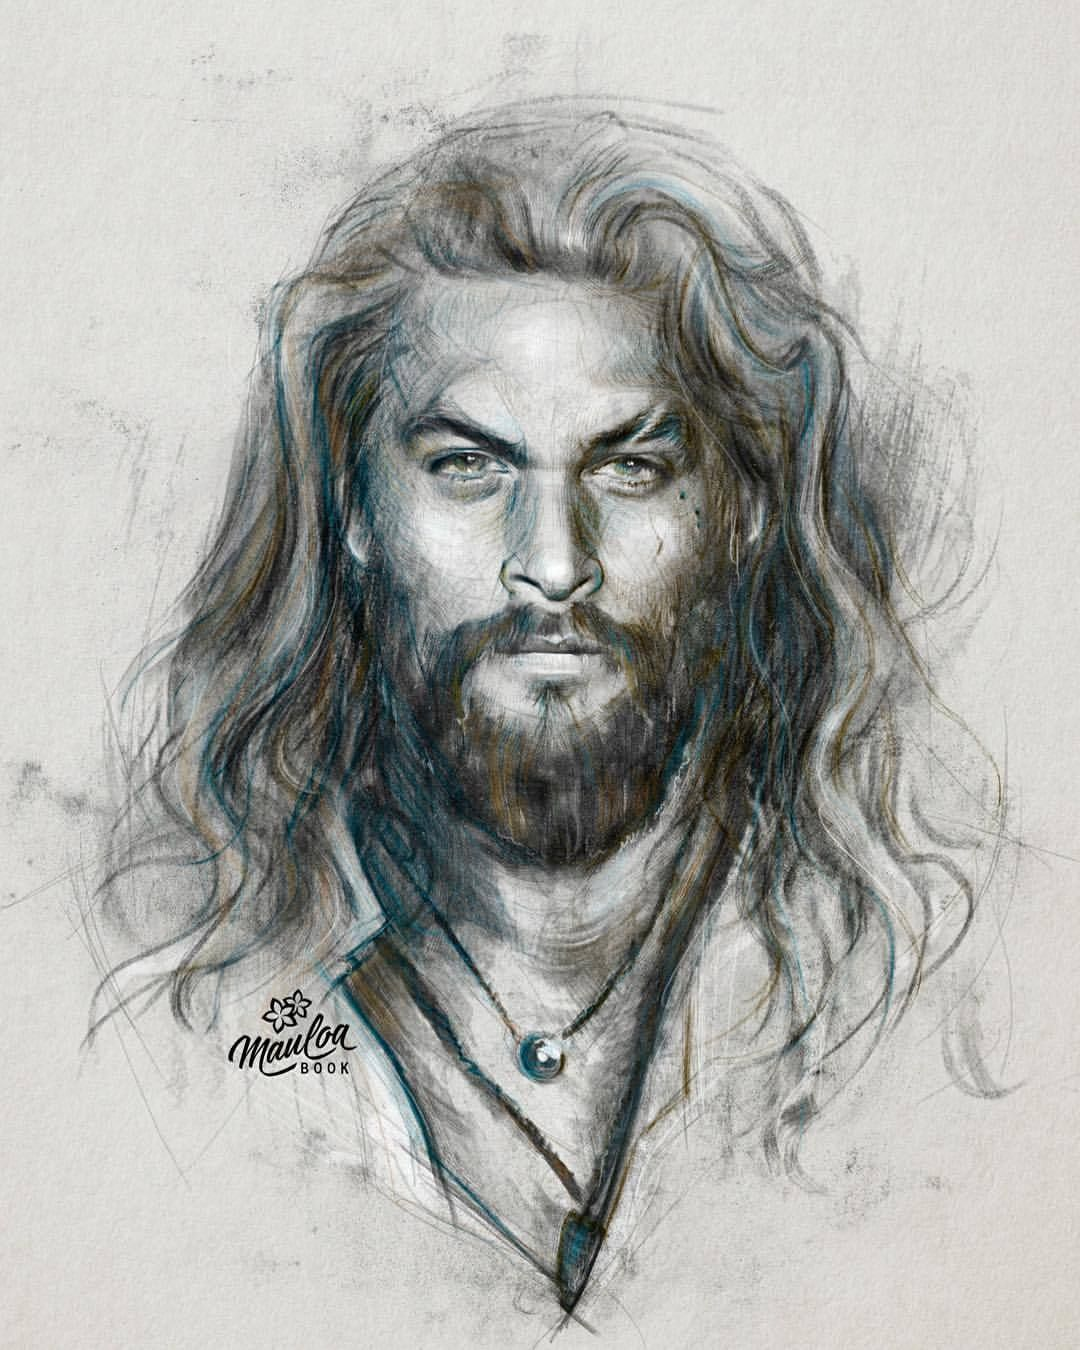 «How do the angels get to sleep / when the devil leaves the porch light on?» #TomWaits #MrSiegal #JasonMomoa #PrideOfGypsies #Aquaman #KaMoiDirtbag #Drawing #Charcoal #Graphite #PrismacolorPencils #BackOnTrack #FeelingBetter